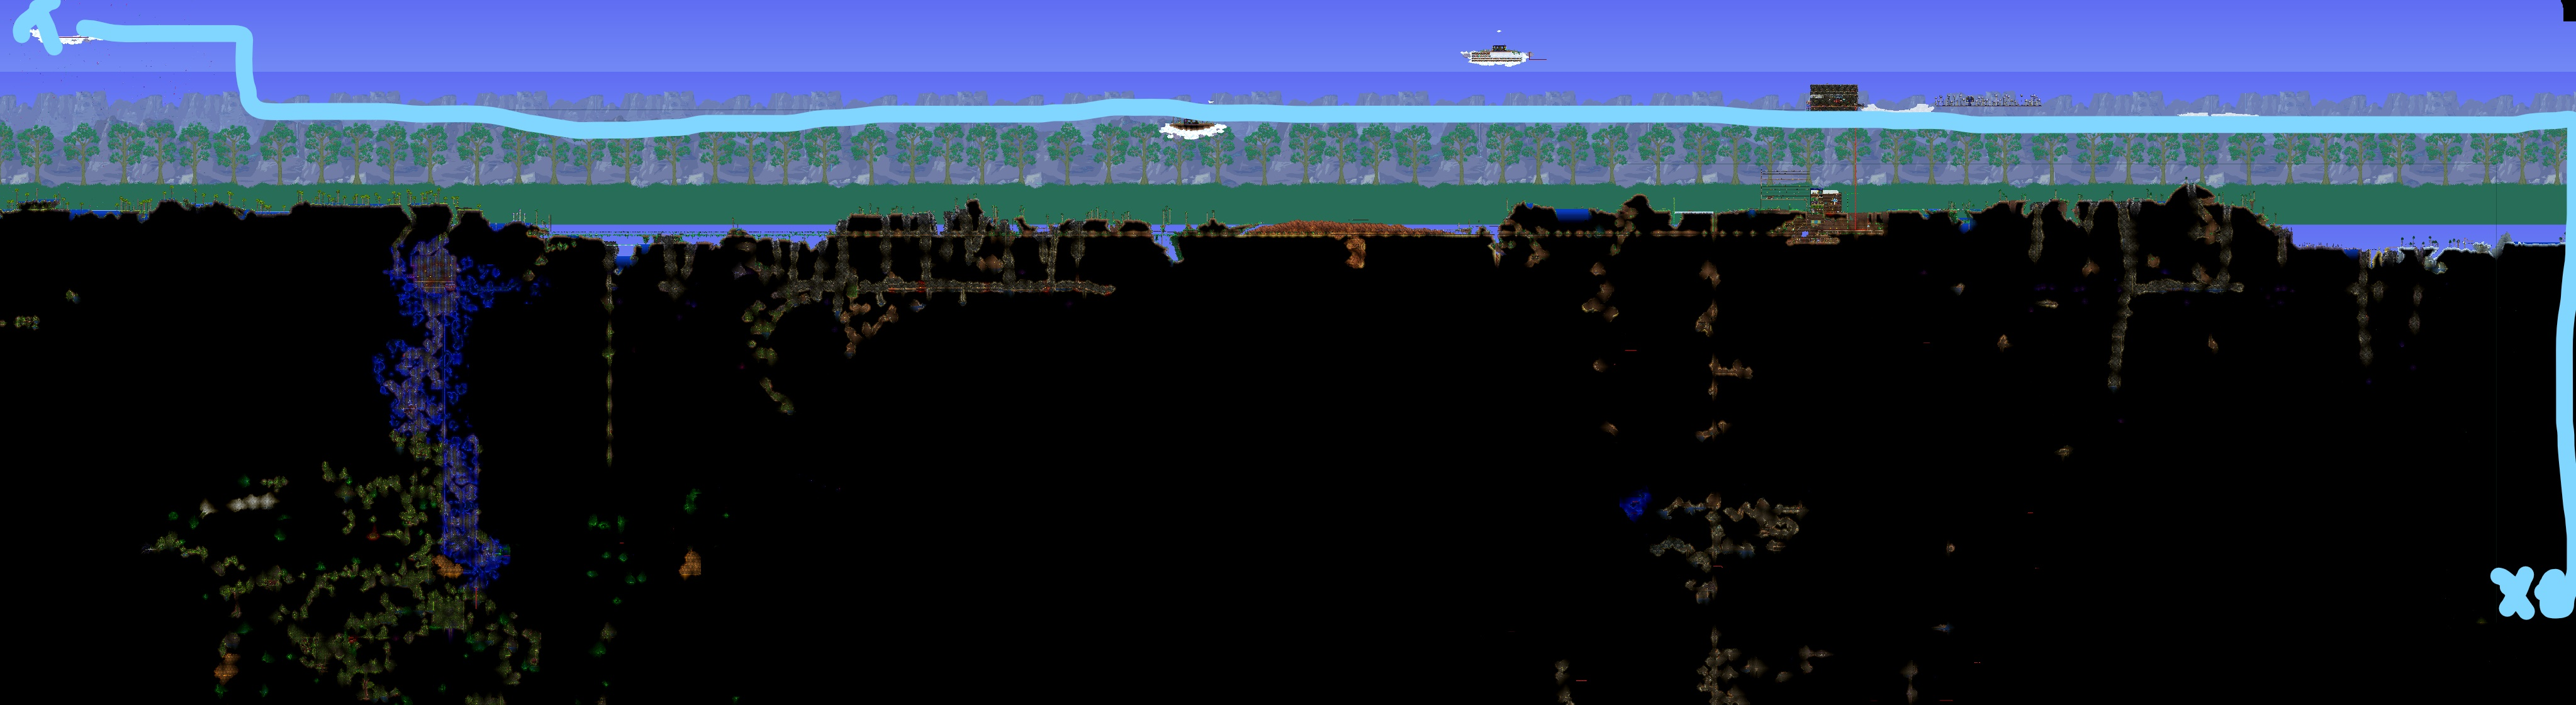 Pc Teleporters Not Working Terraria Community Forums I joined teleporter a to teleporter b around 1000 blocks away and it wouldn't work. pc teleporters not working terraria